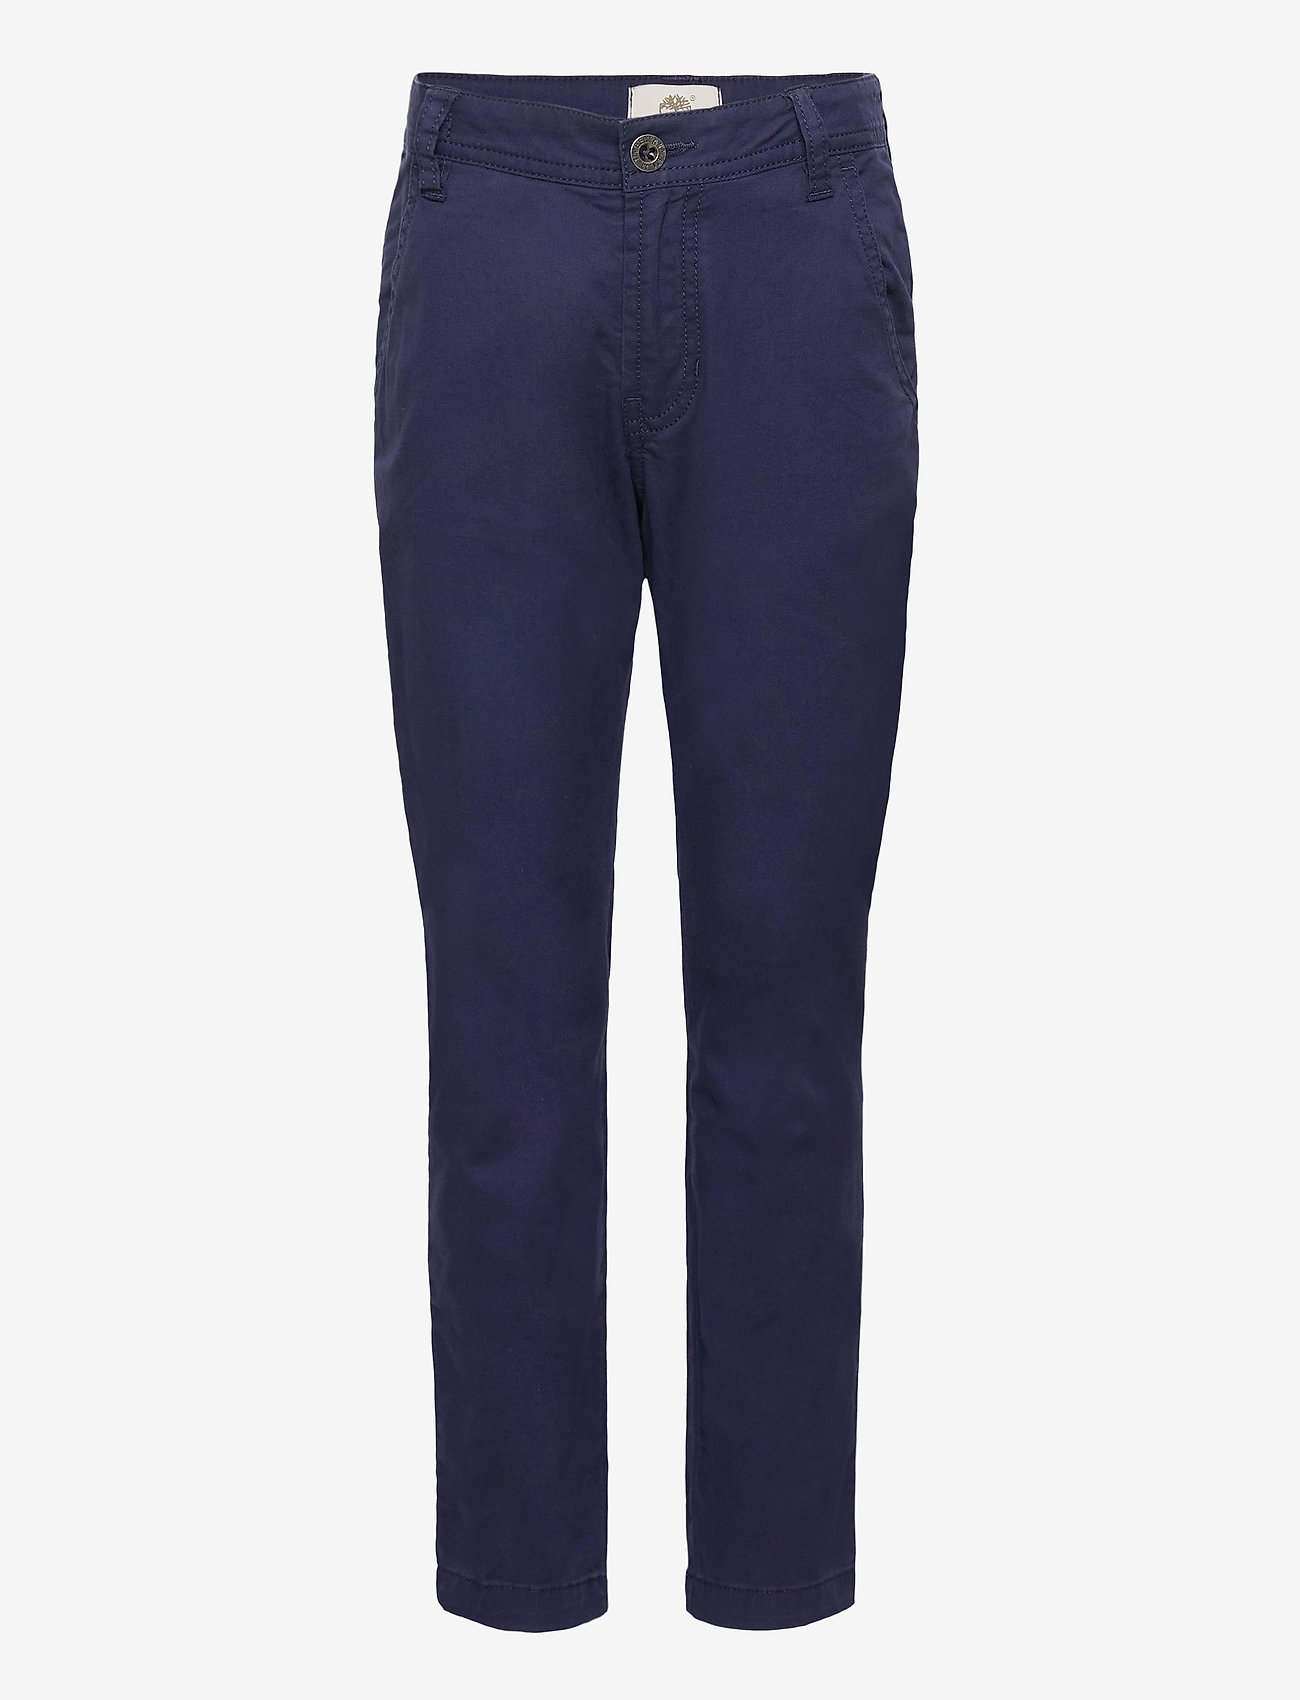 Timberland - TROUSERS - trousers - navy - 0